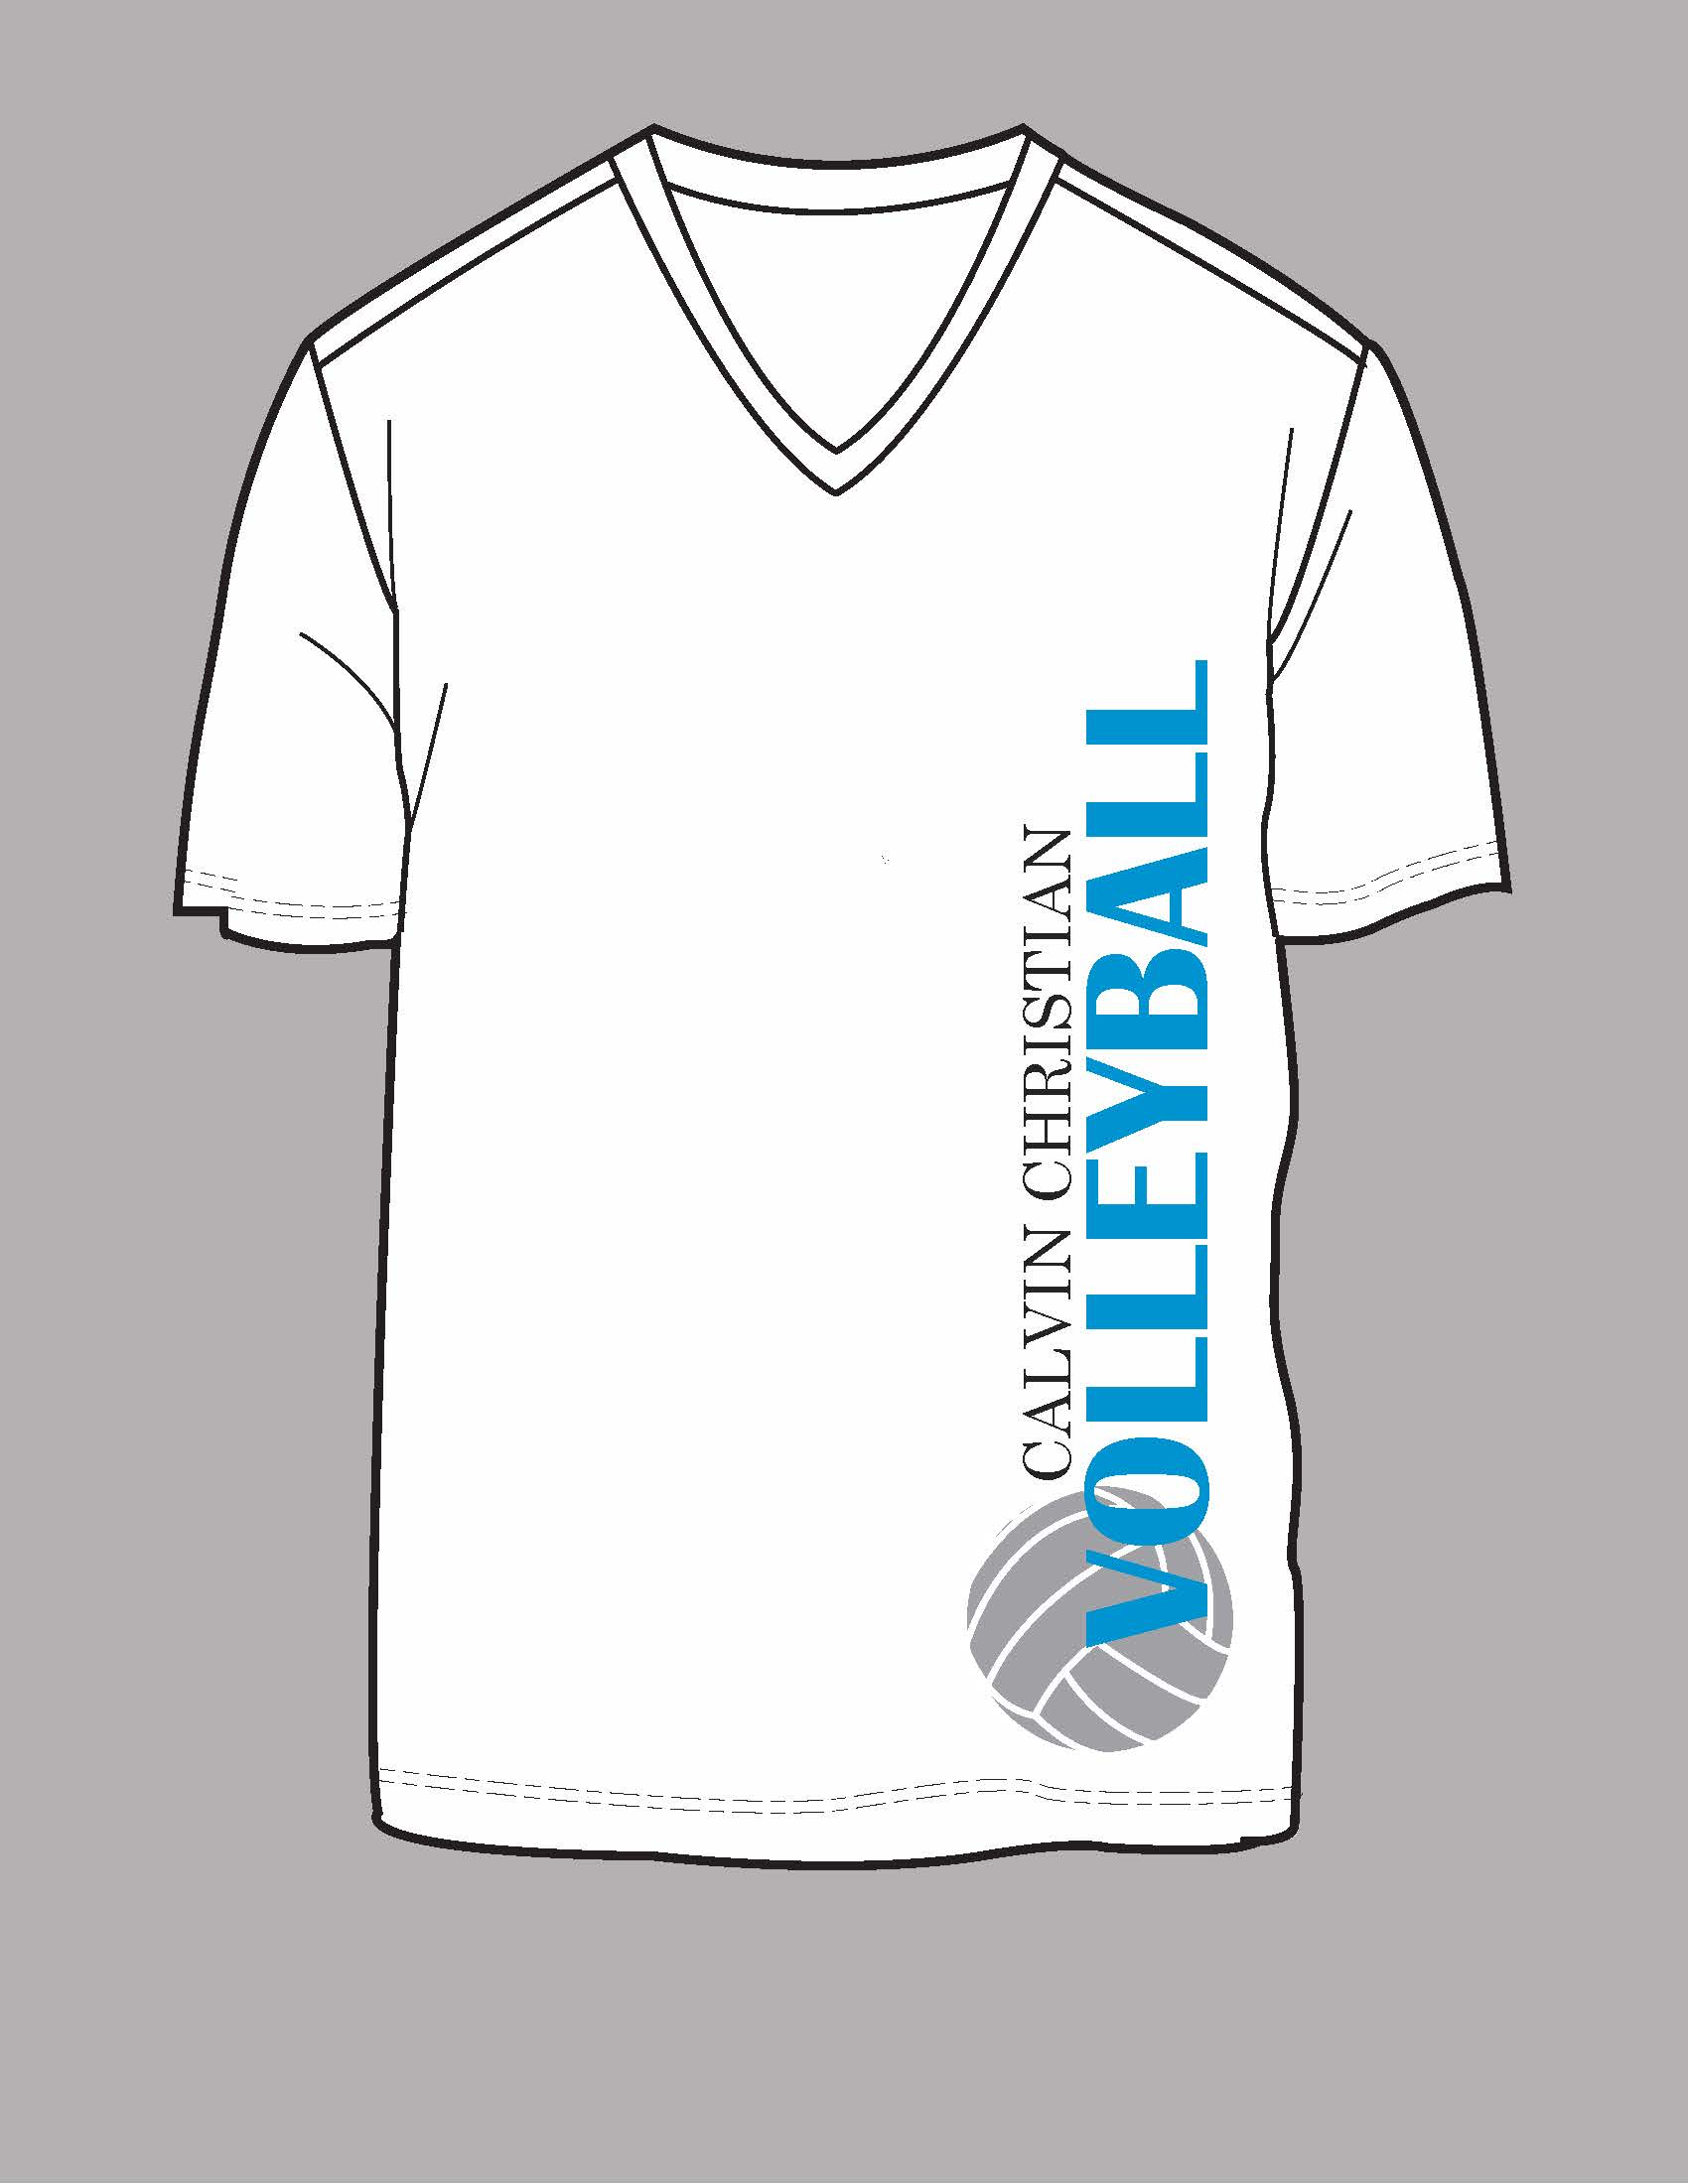 ... Volleyball T Shirt Design Ideas. Download